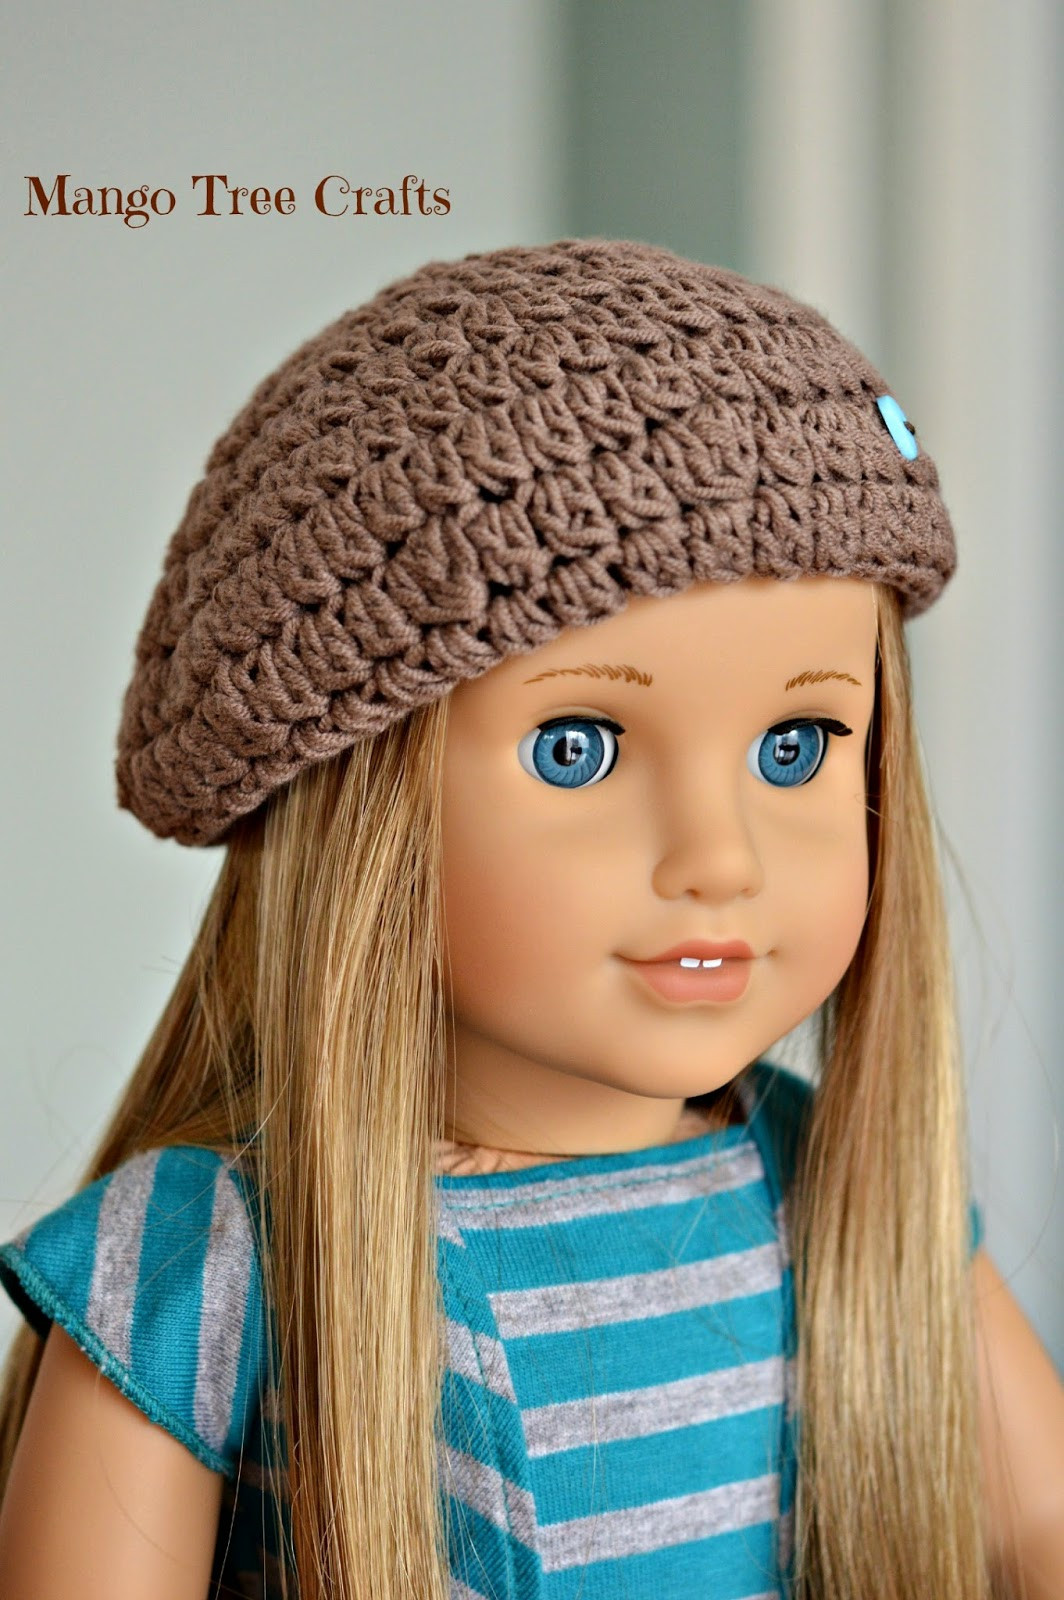 Beautiful Mango Tree Crafts Crochet Beret Hat Pattern for 18 Free American Girl Doll Patterns Of Top 44 Pics Free American Girl Doll Patterns